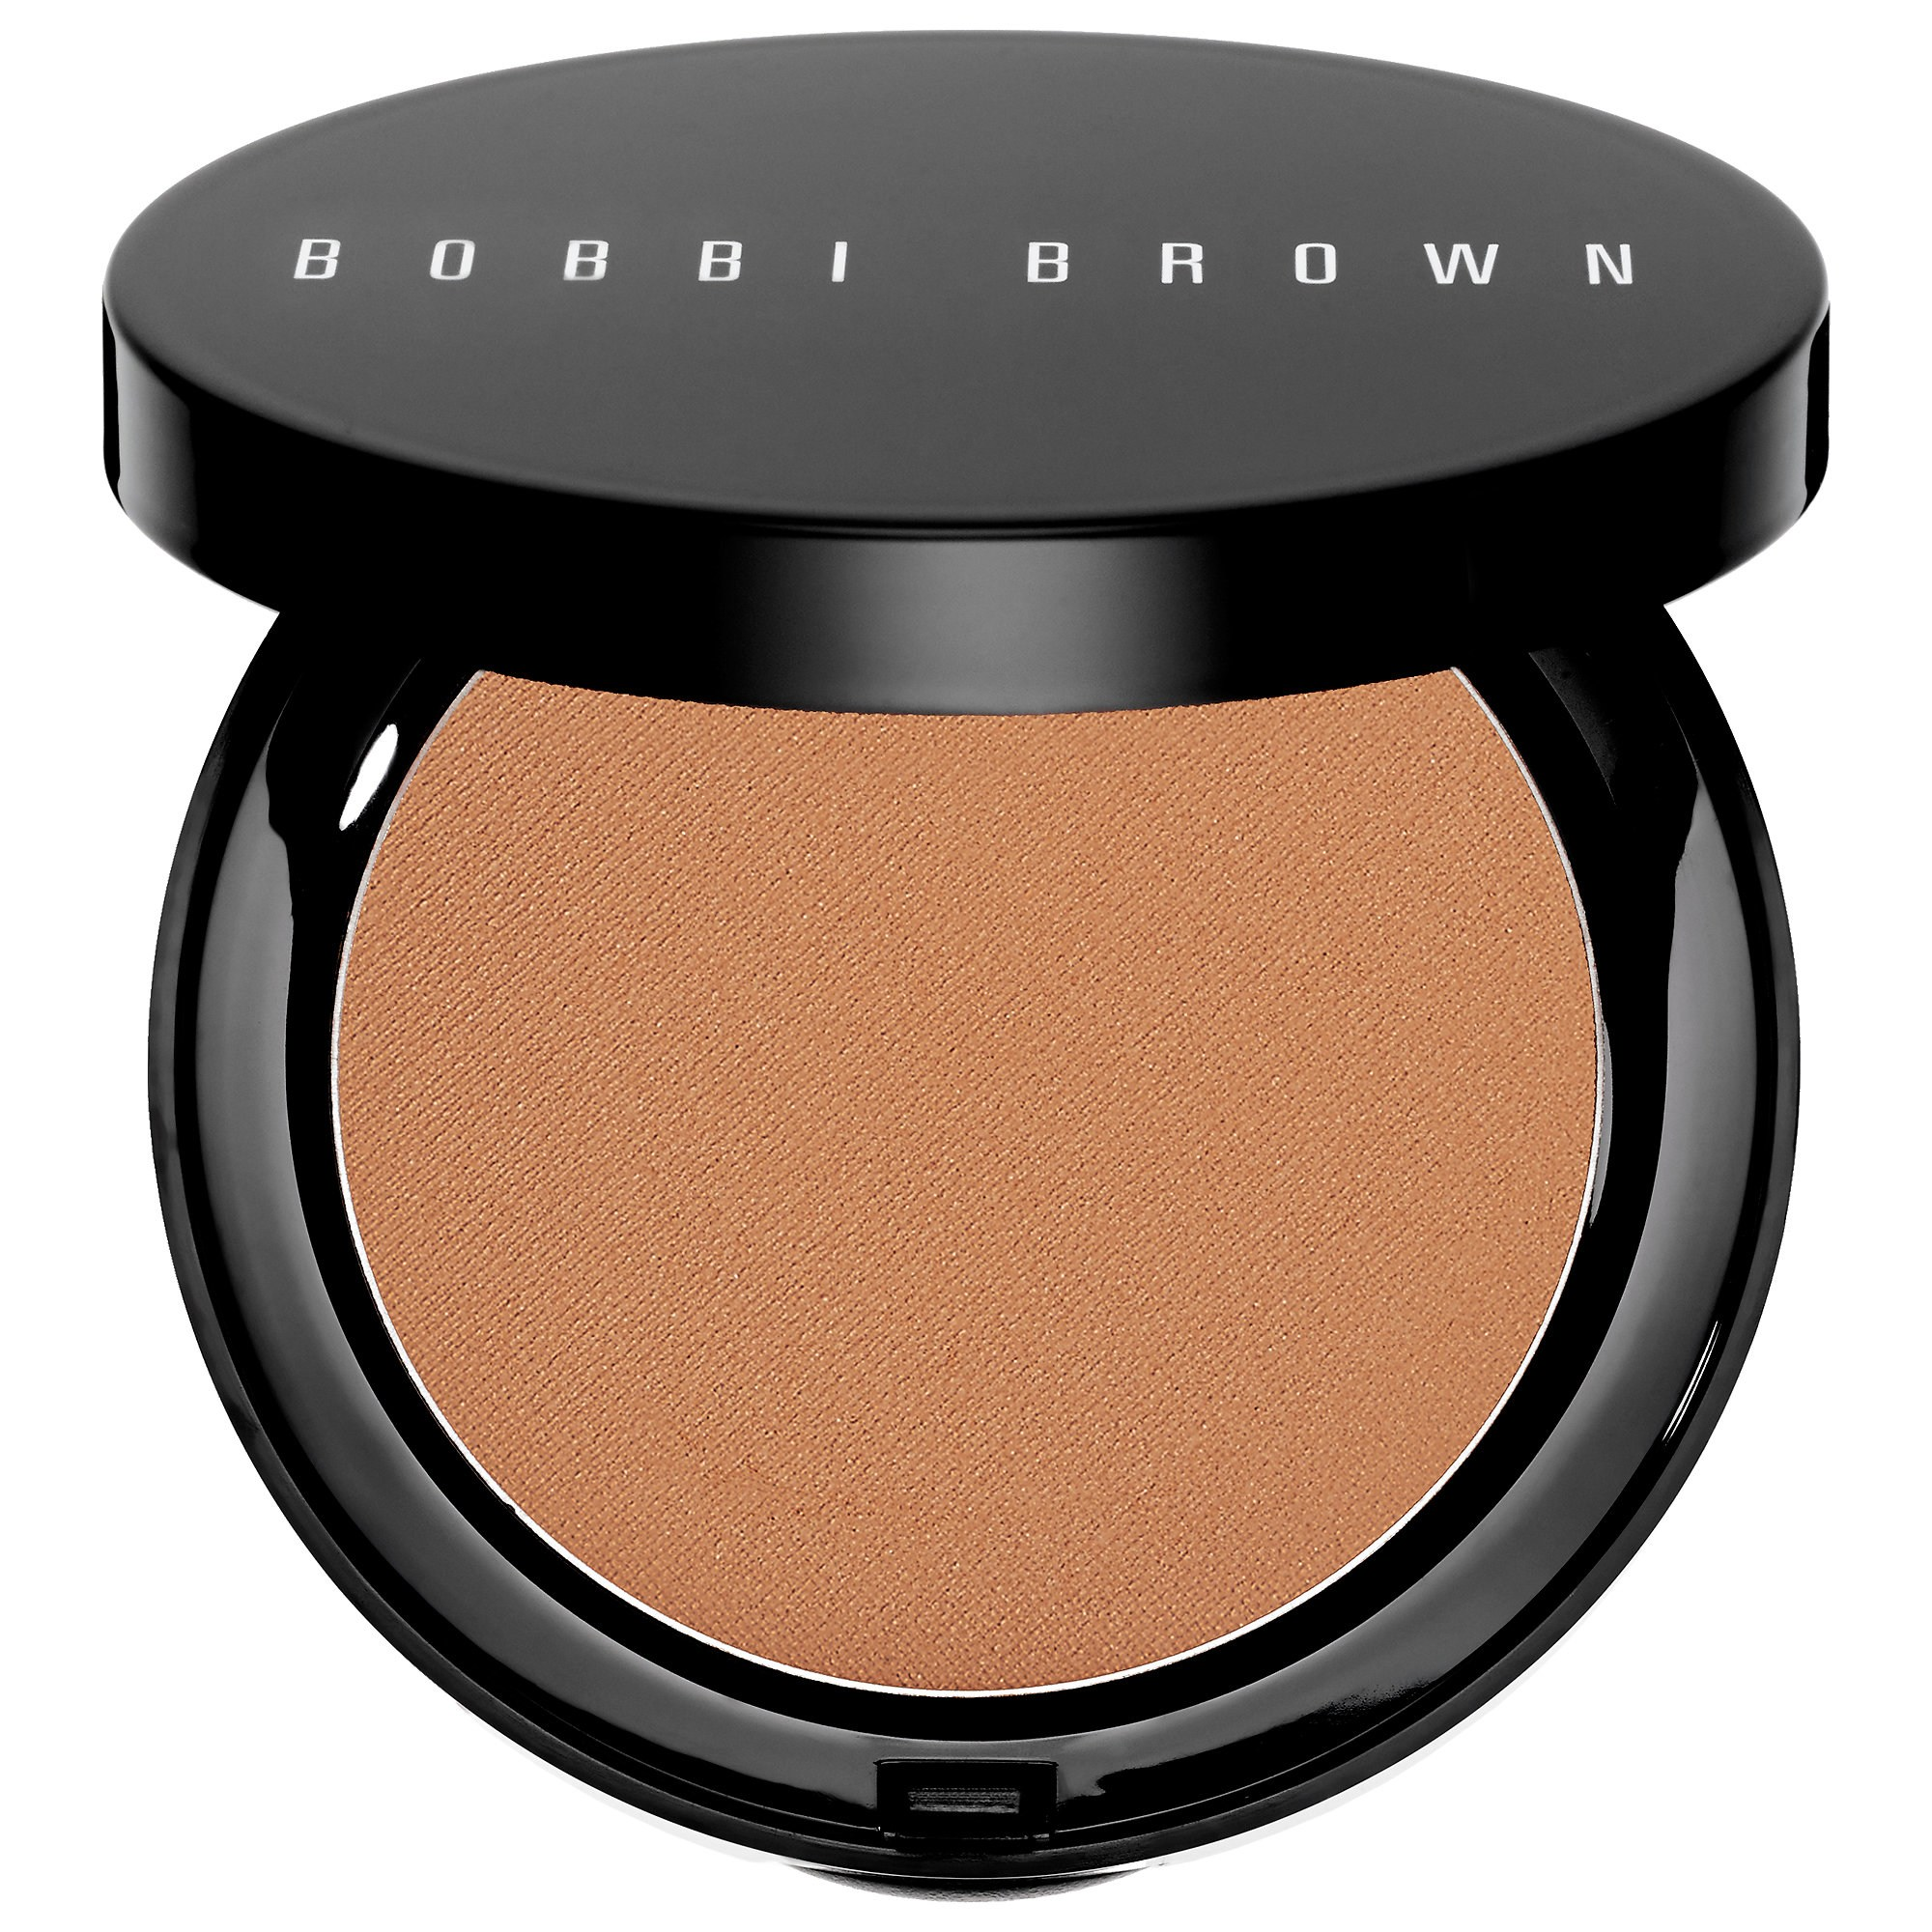 B R O N Z E R #2 - This is a great bronzer. More matte than the butter bronzer. Worth every penny!